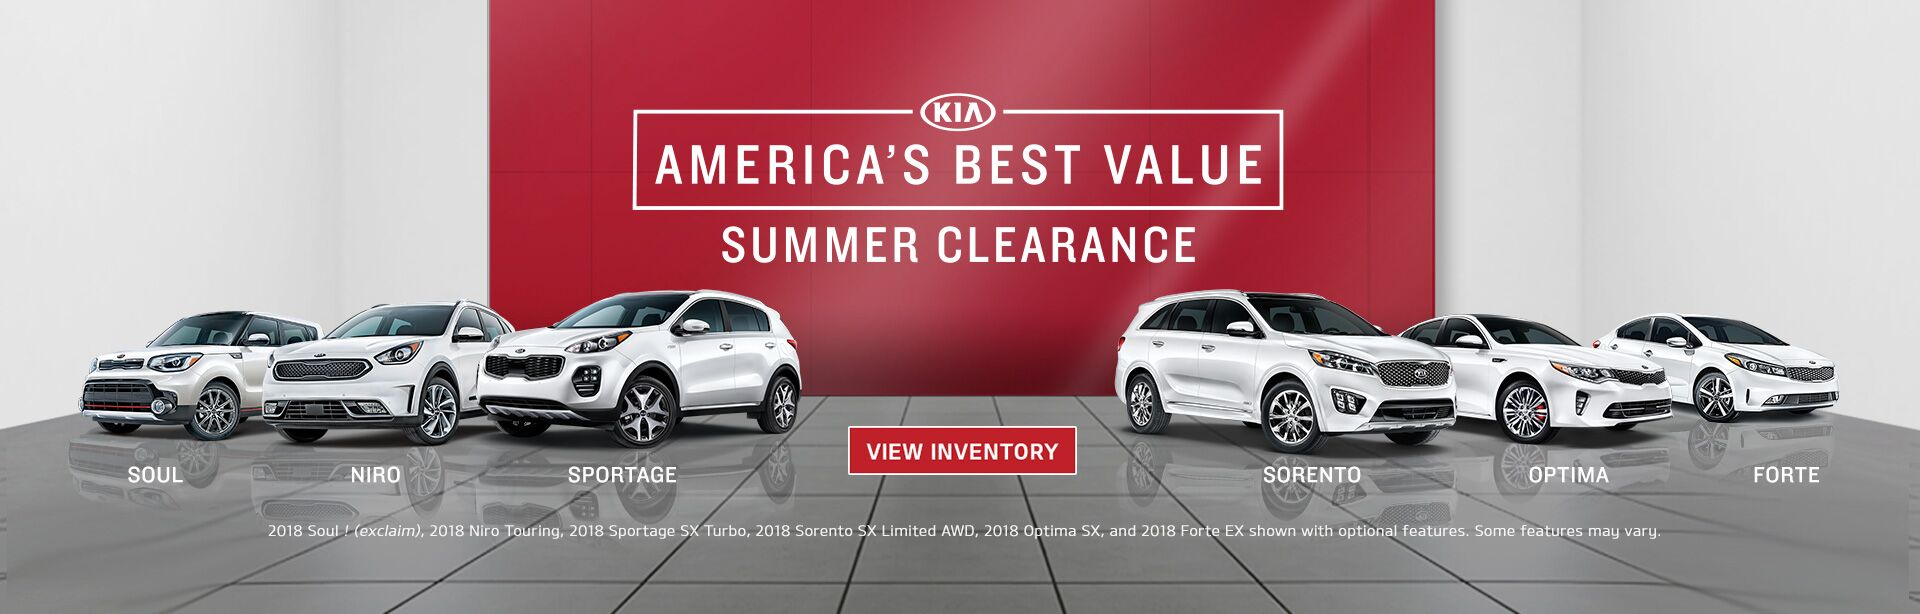 America's Best Value Summer Clearance